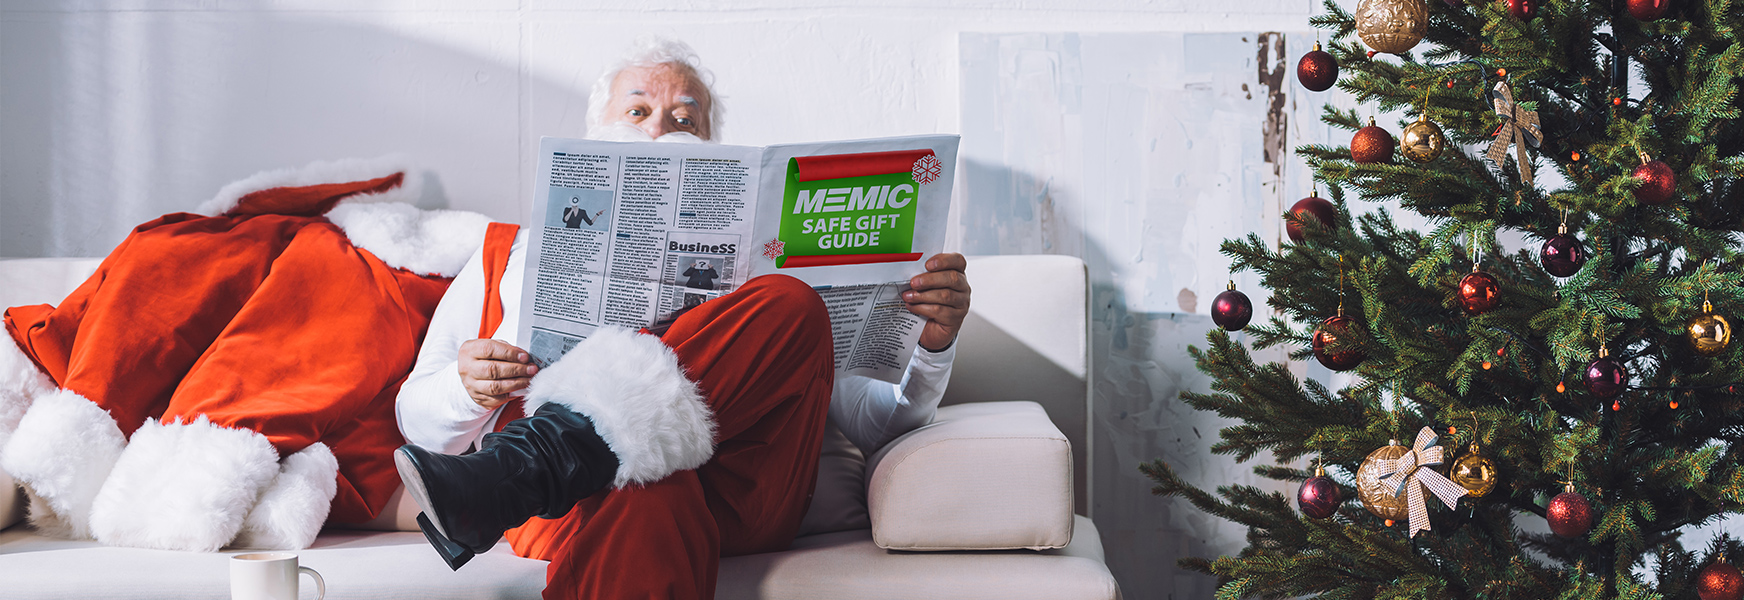 Santa Claus reading MEMIC Safe Gift Guide